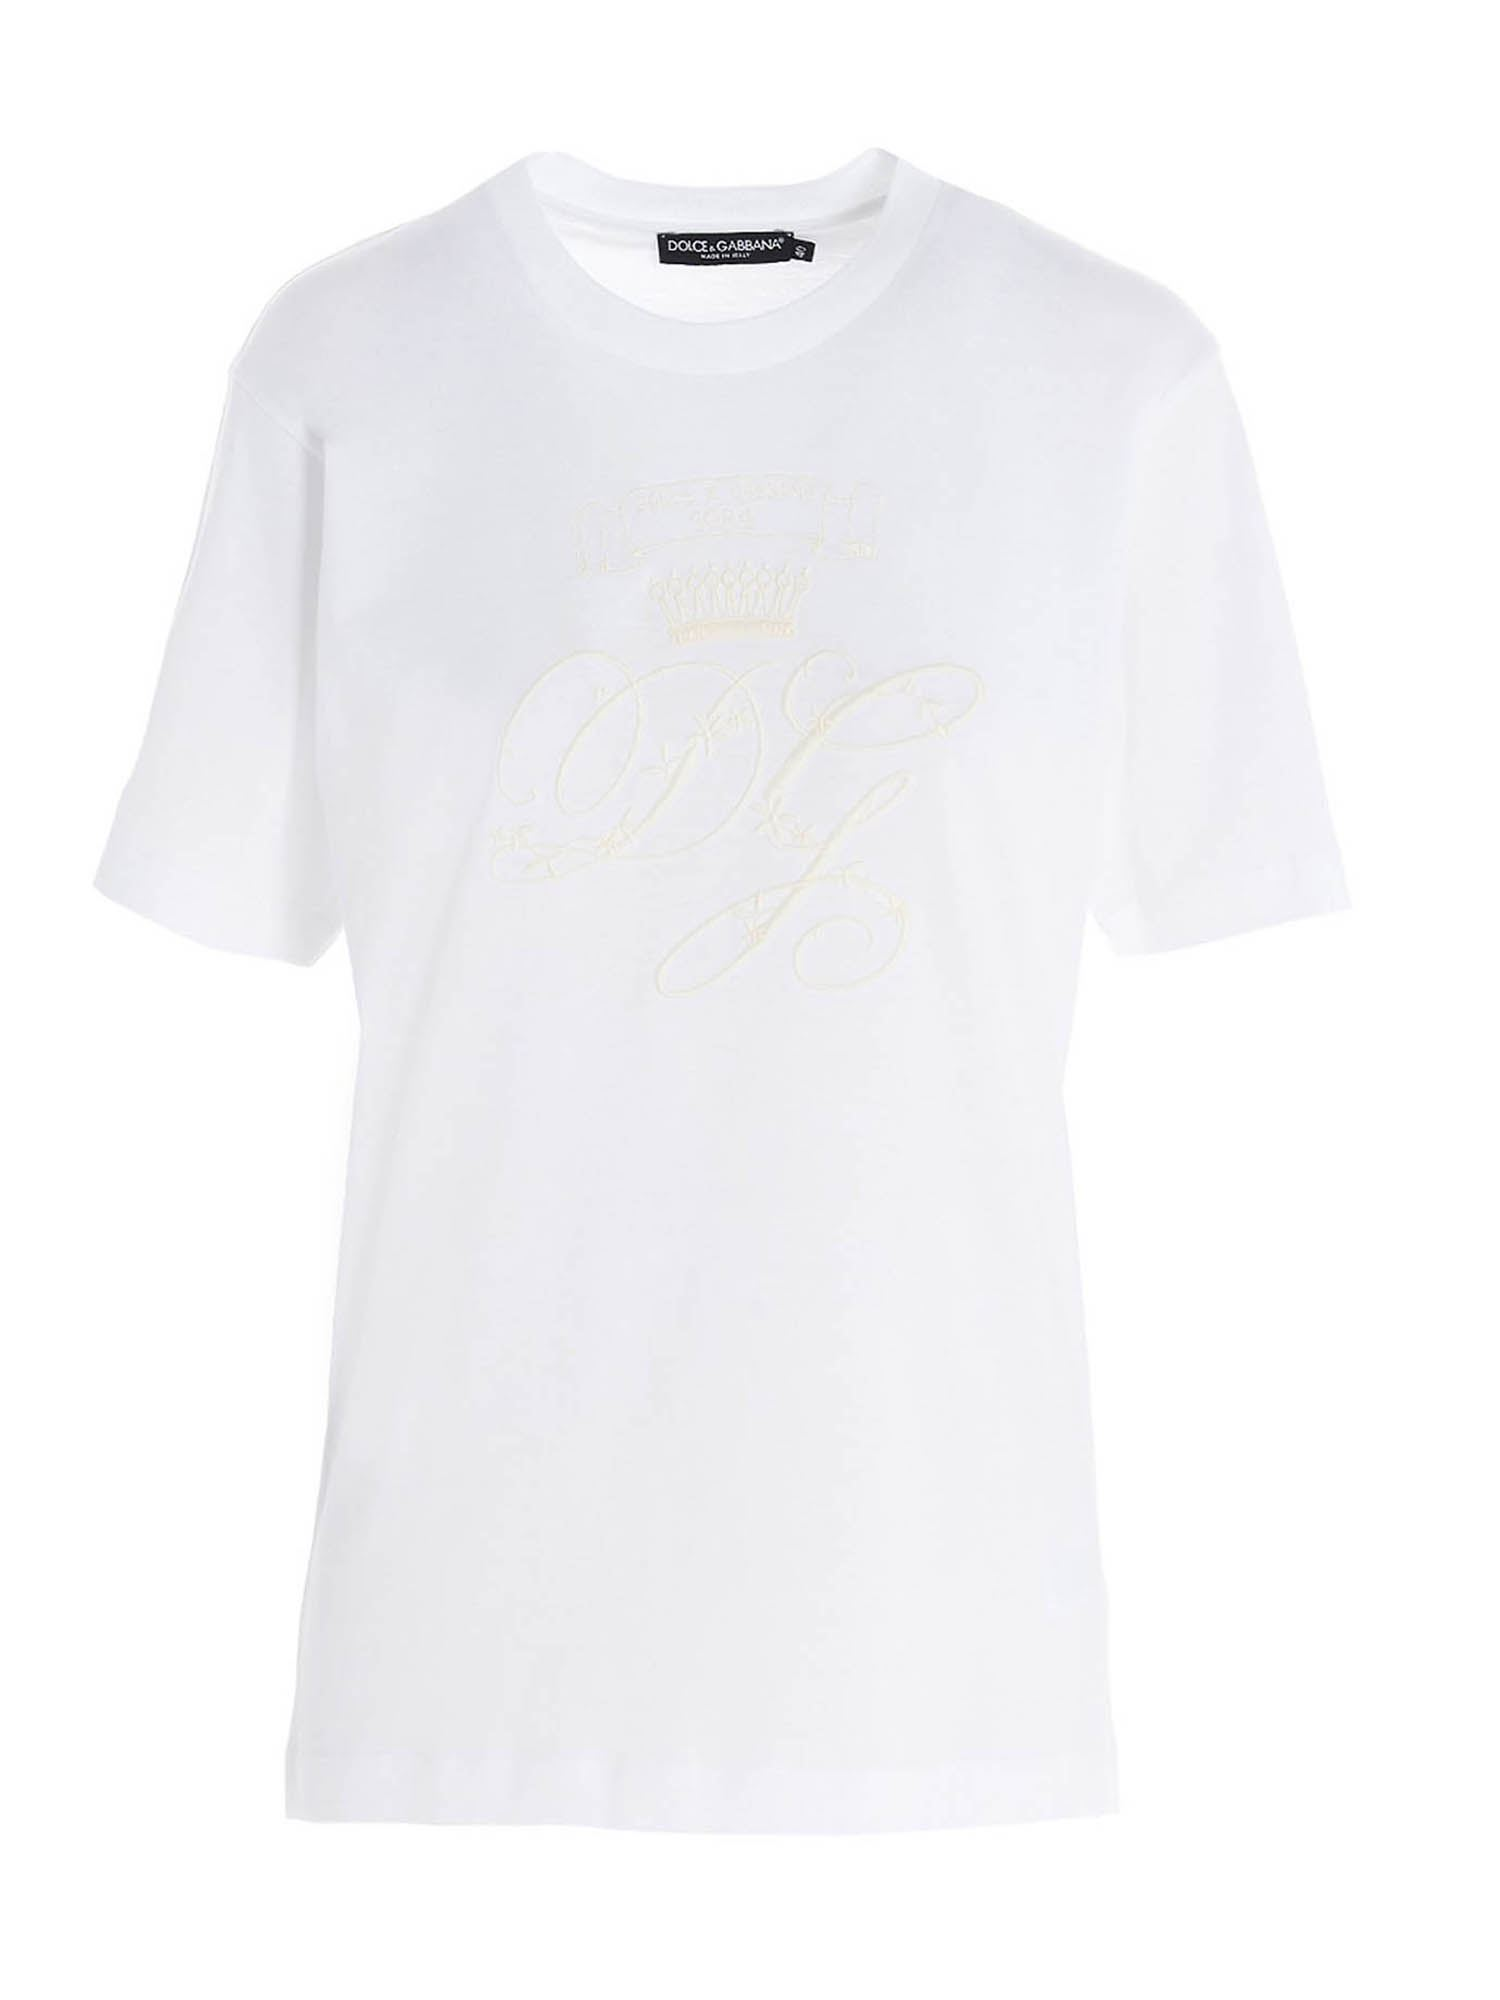 Dolce & Gabbana EMBROIDERED LOGO T-SHIRT IN WHITE